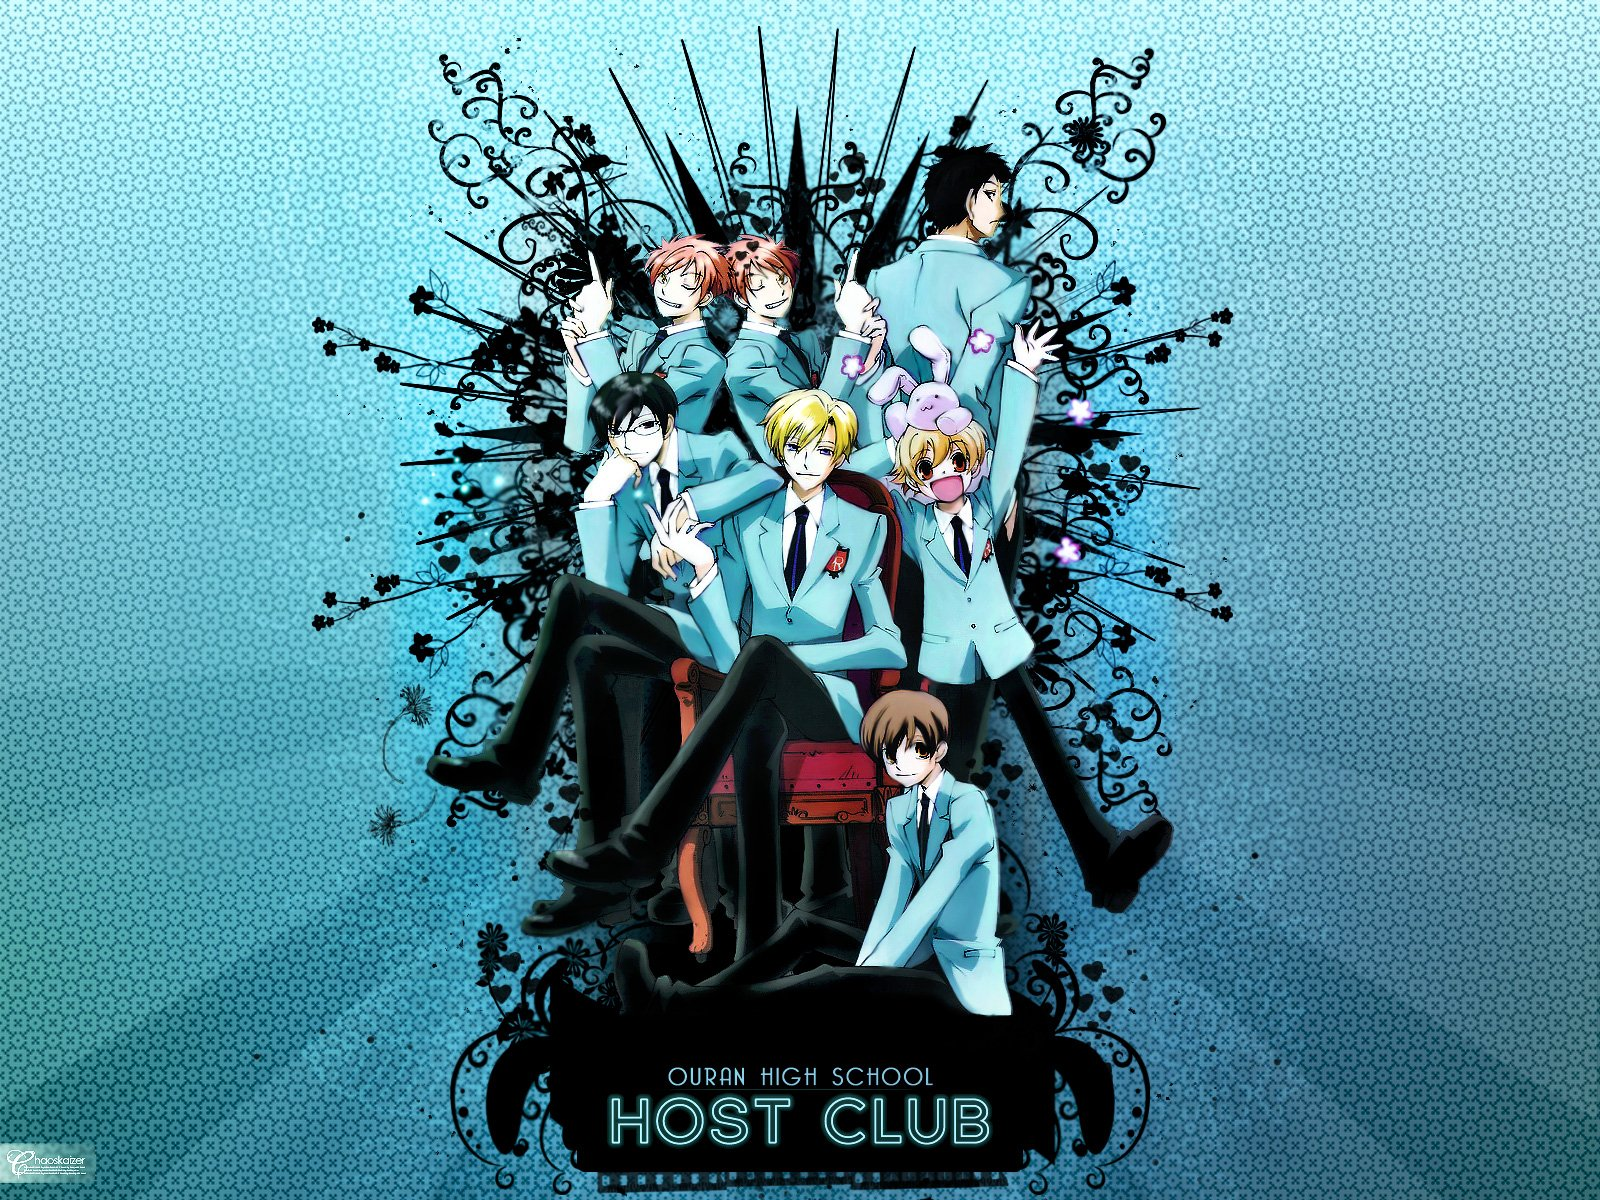 55 Ouran High School Host Club Hd Wallpapers Background Images